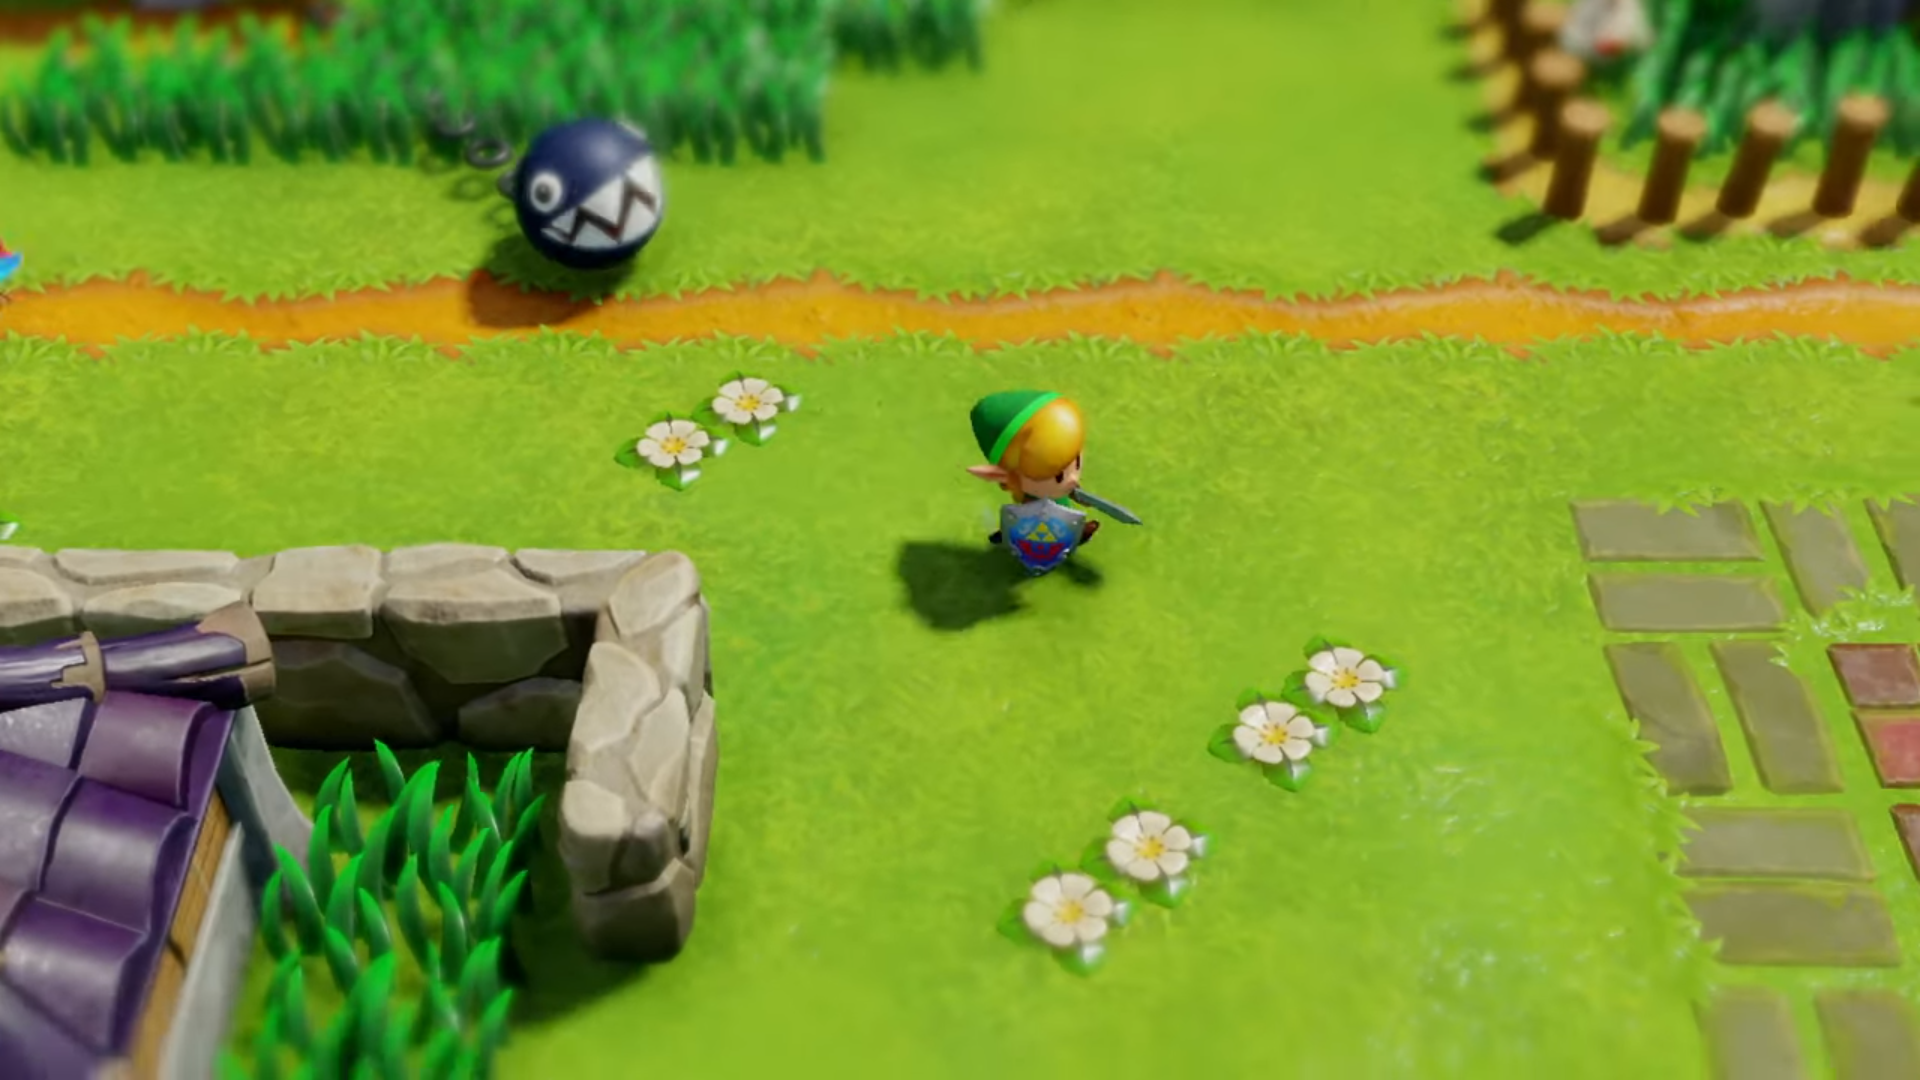 Daily Debate: What Are Your Thoughts on Link's Awakening for